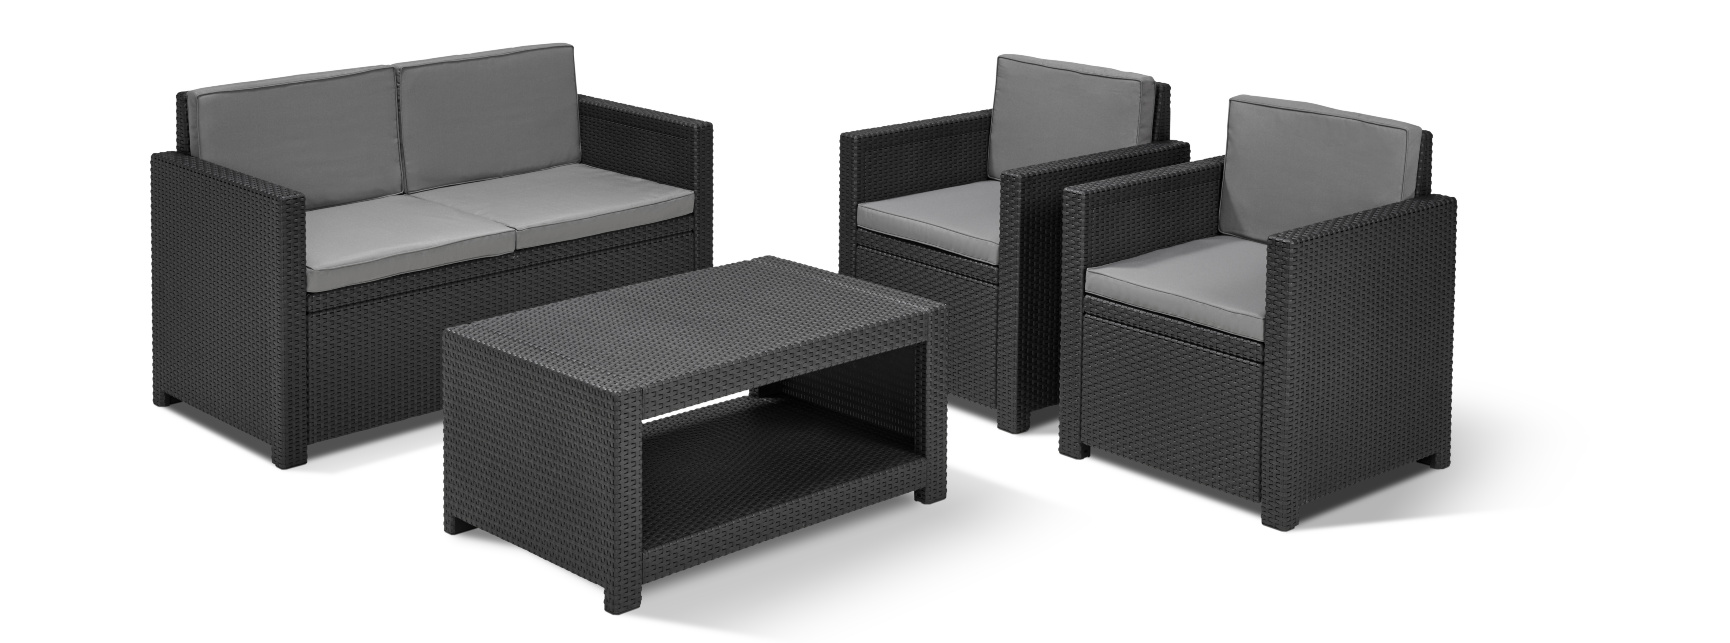 allibert monaco loungeset grafiet allibert. Black Bedroom Furniture Sets. Home Design Ideas